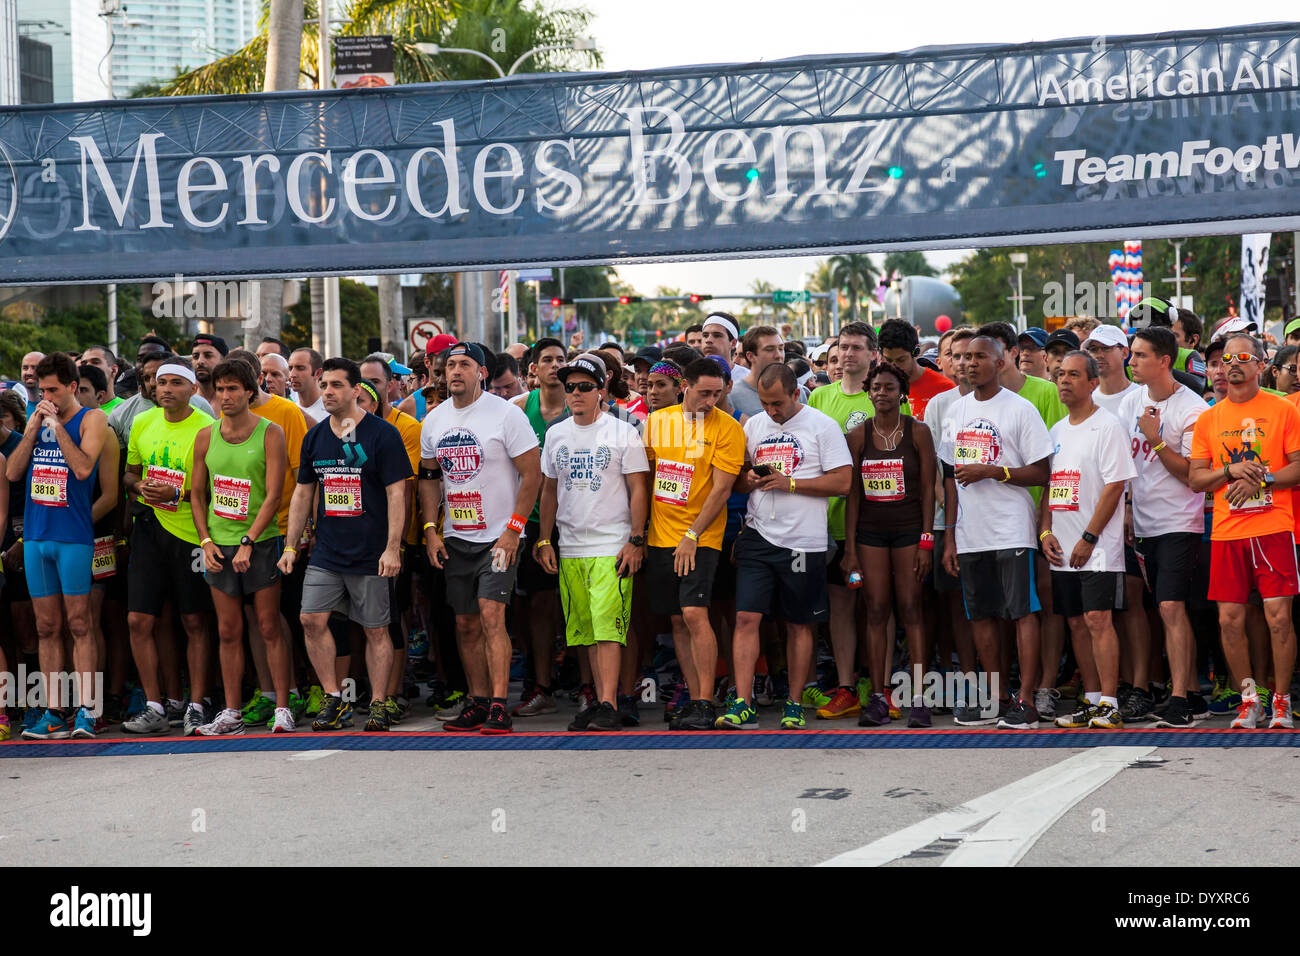 Runners at start of 2014 Mercedes-Benz Corporate Run in Miami, Florida, USA. Stock Photo